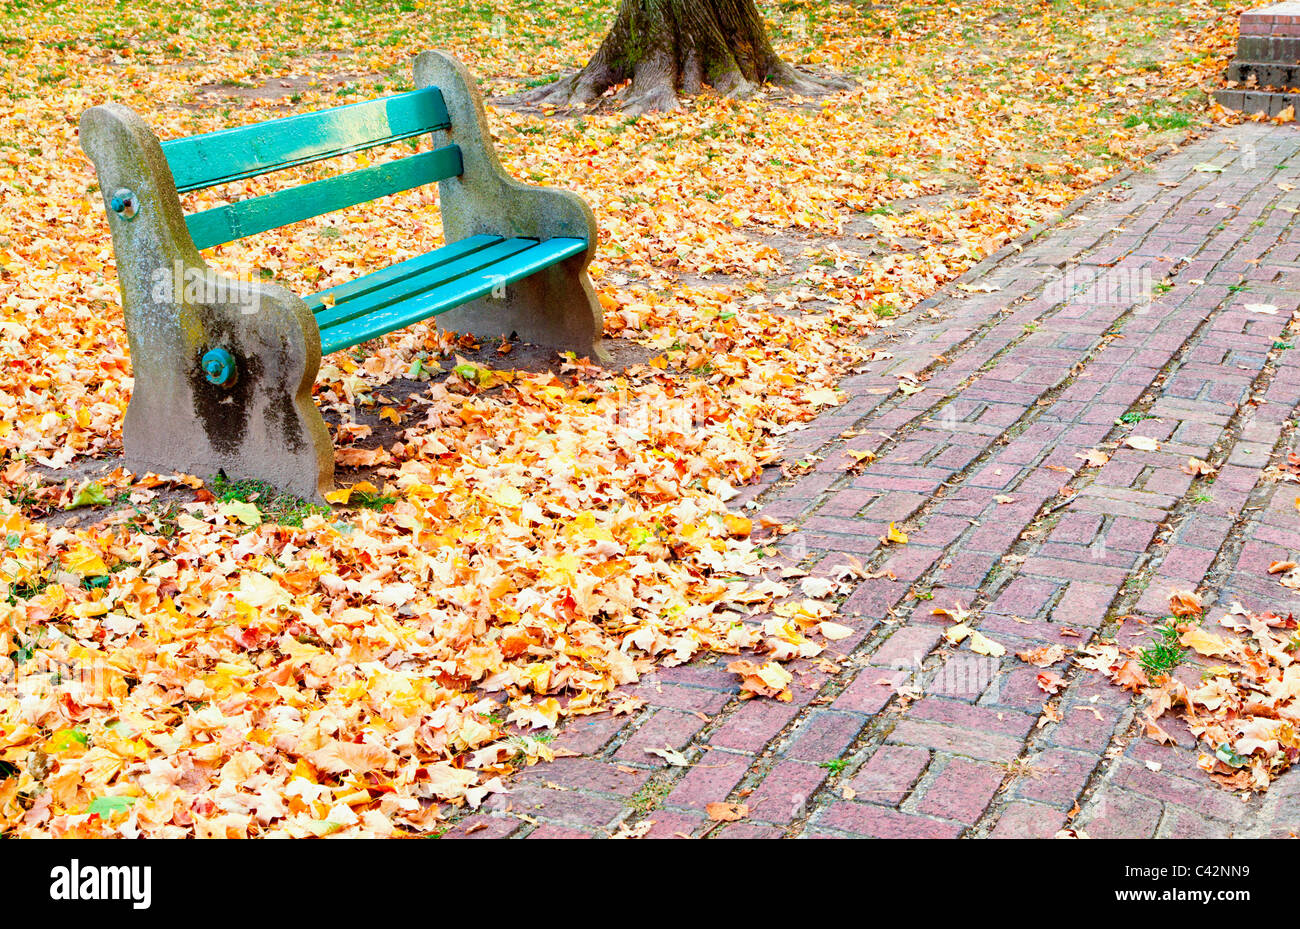 Park bench - Stock Image